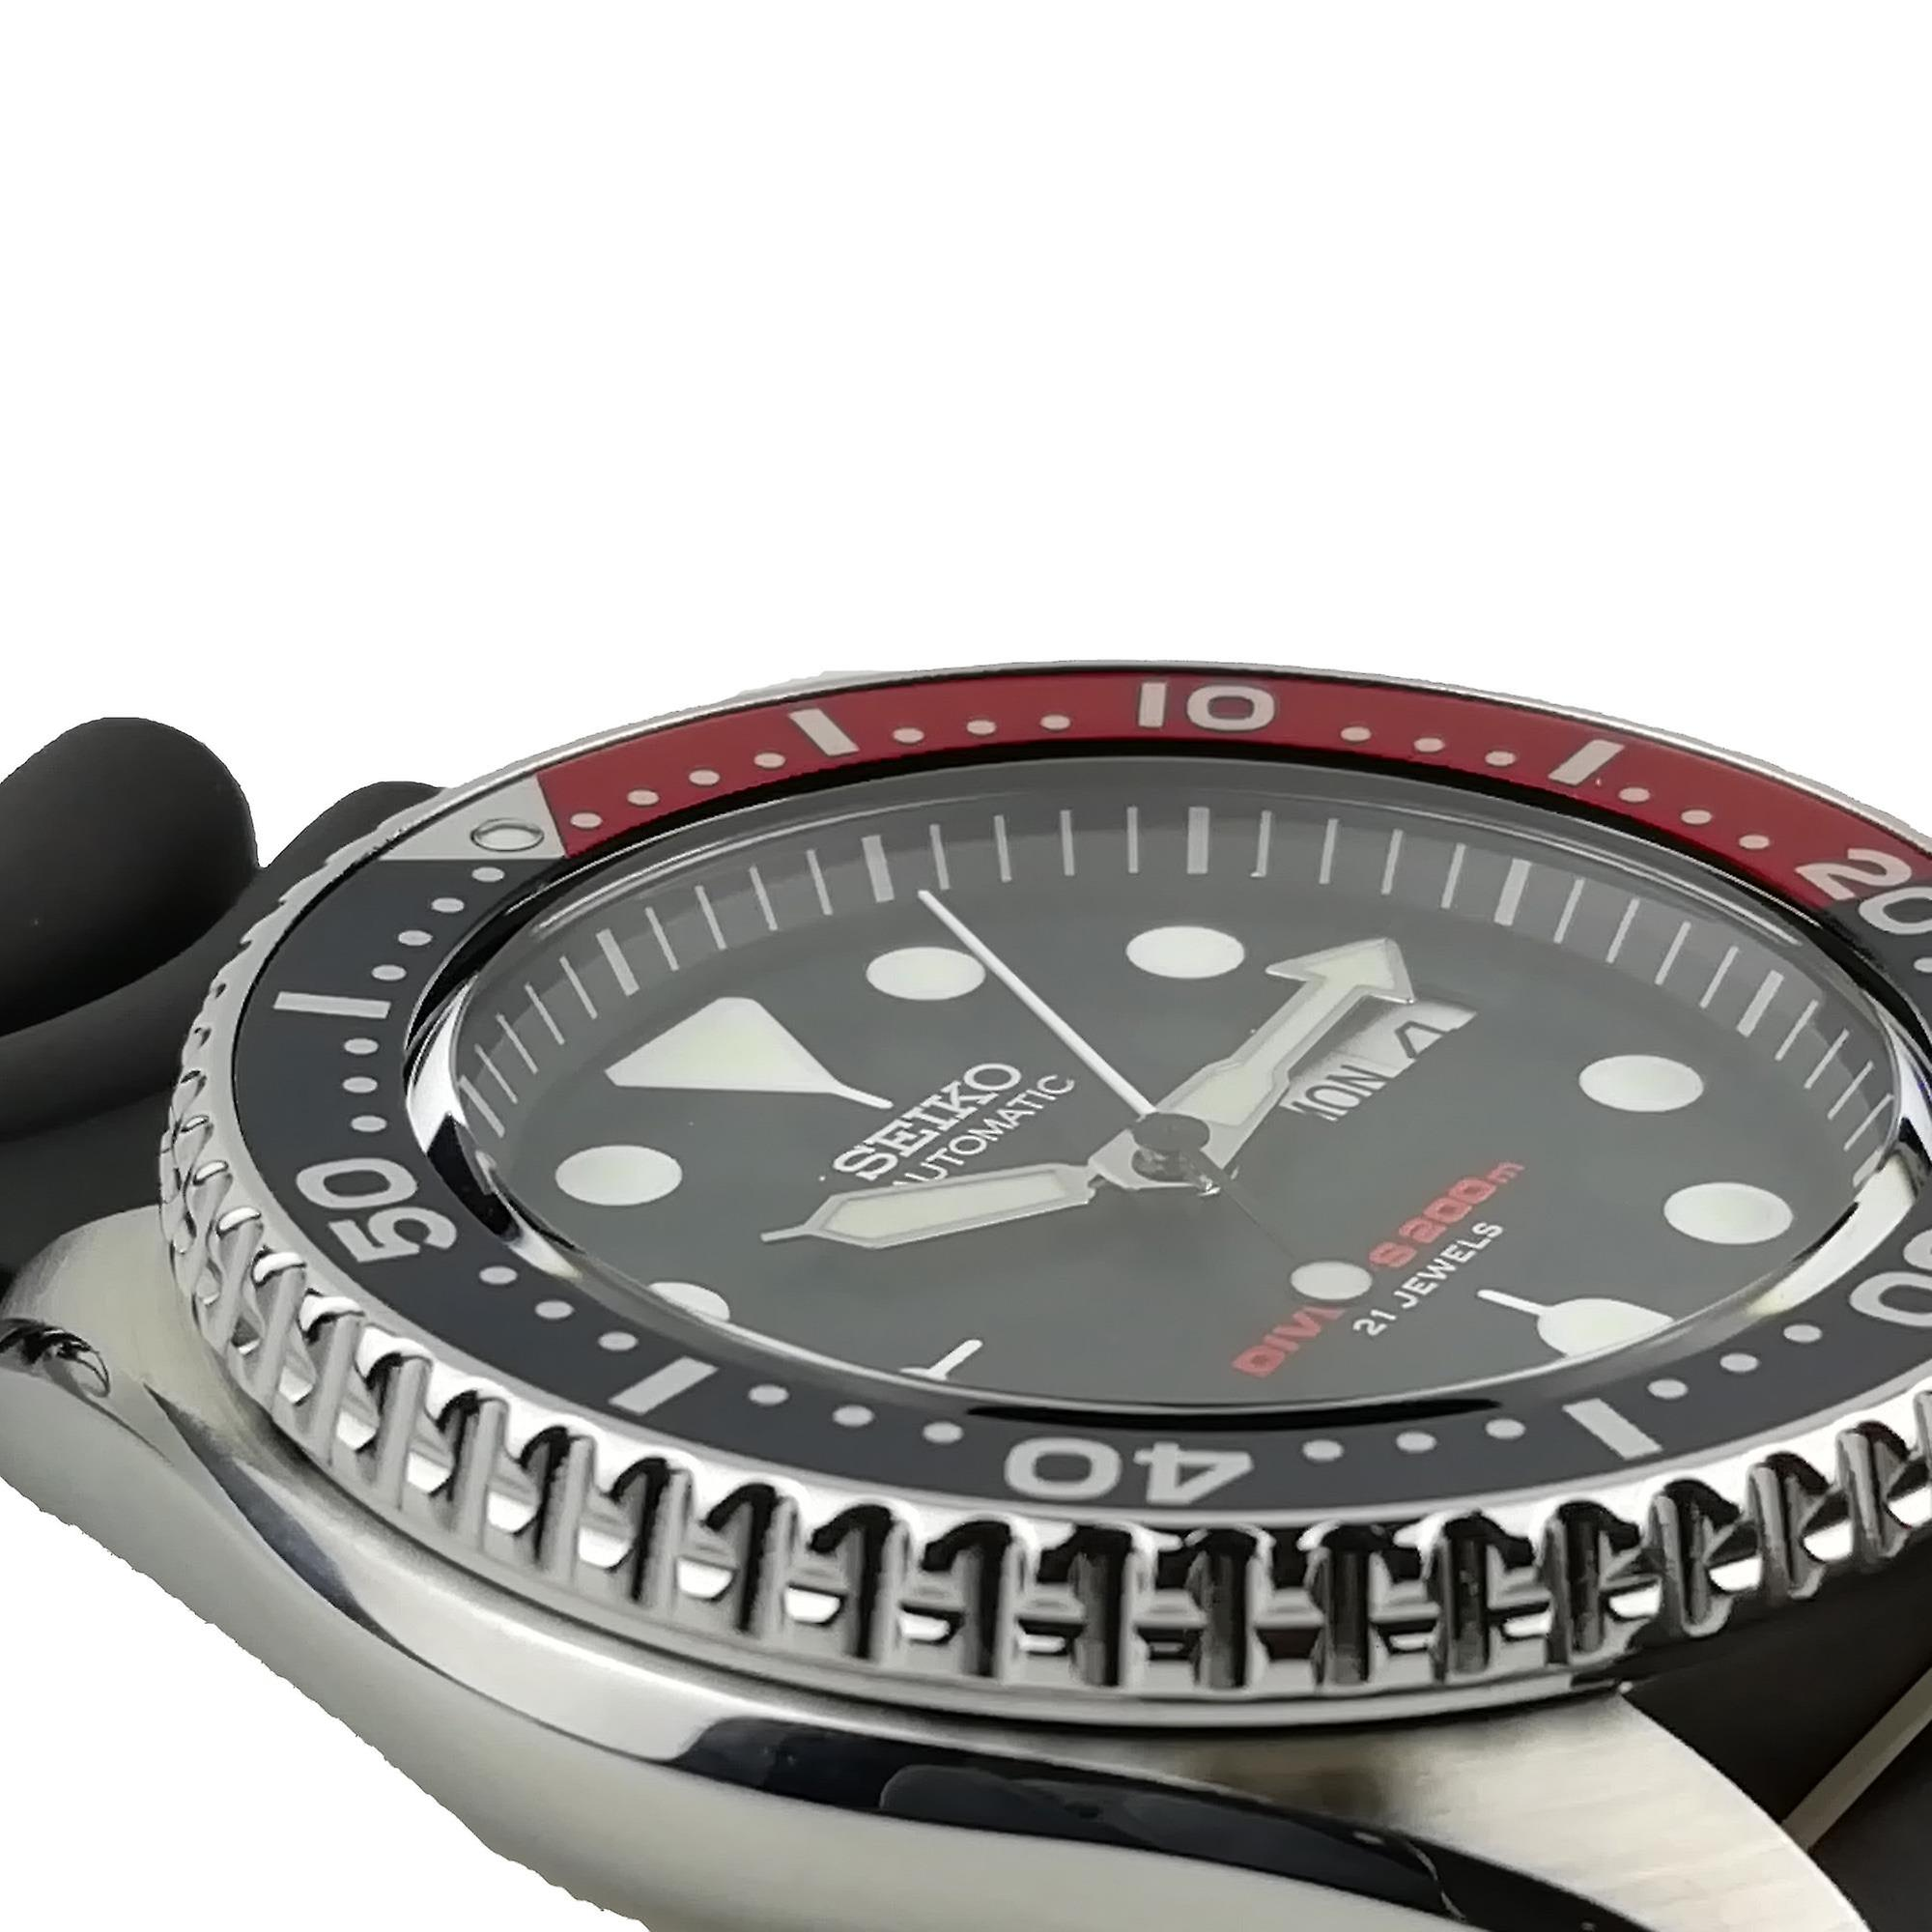 Seiko Japanese Made Divers Pepsi Automatic 200m Silver Stainless Steel Black Rubber Strap Mens Watch